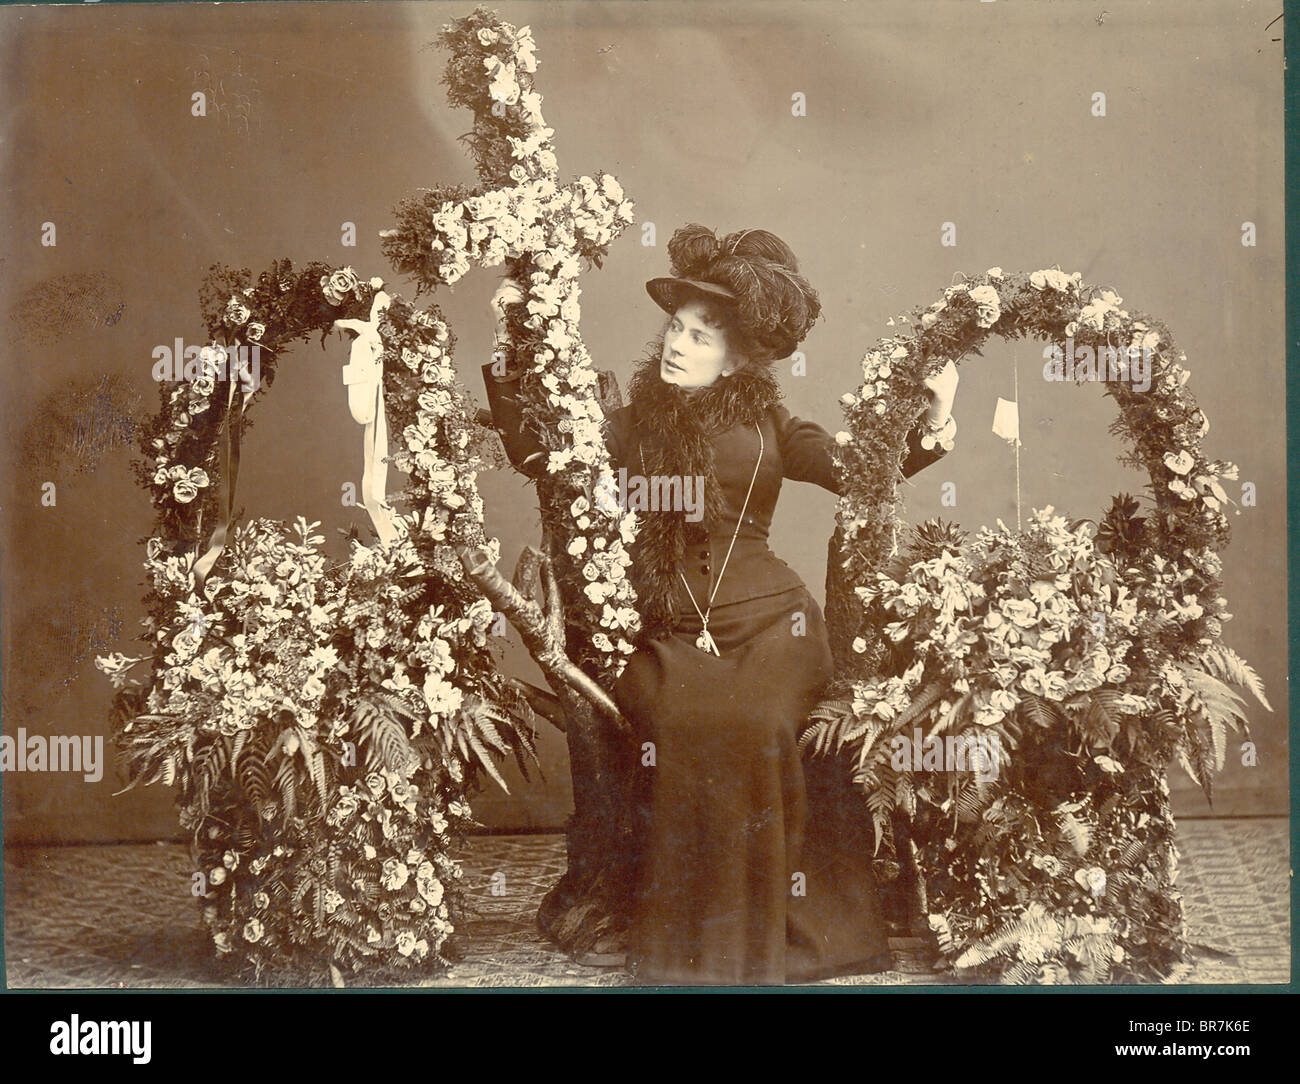 Funeral flowers stock photos funeral flowers stock images alamy victorian cabinet photograph of funeral flowers stock image izmirmasajfo